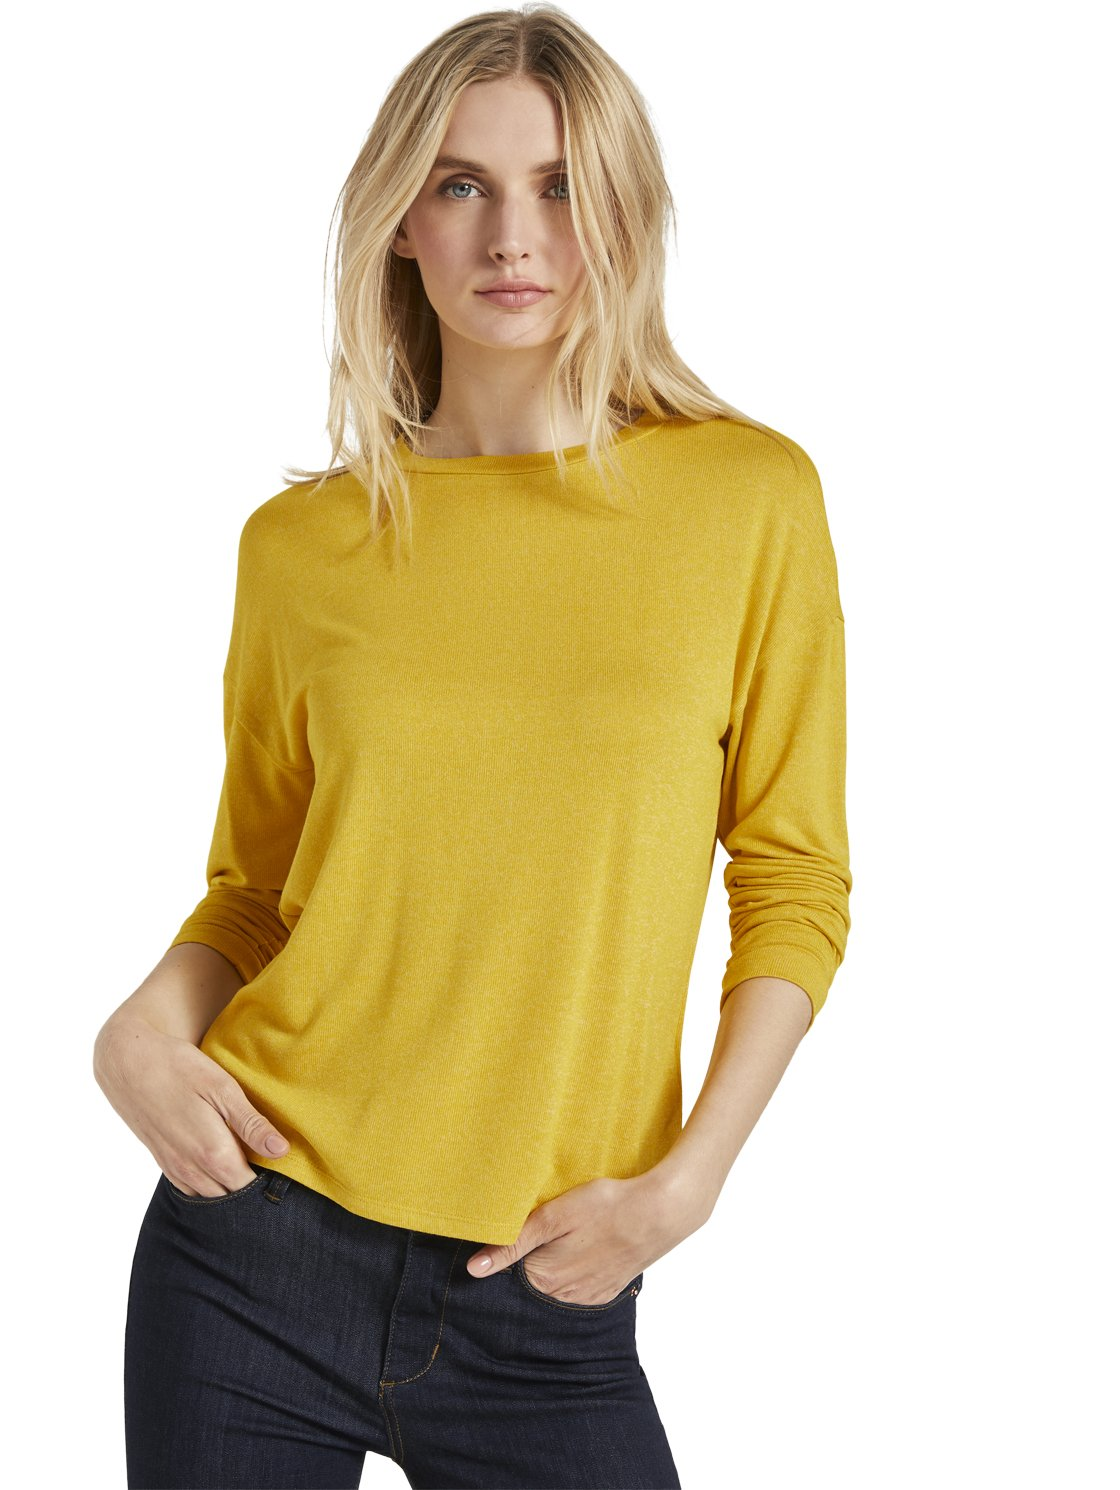 Tom Tailor yellow t-shirt 1022698